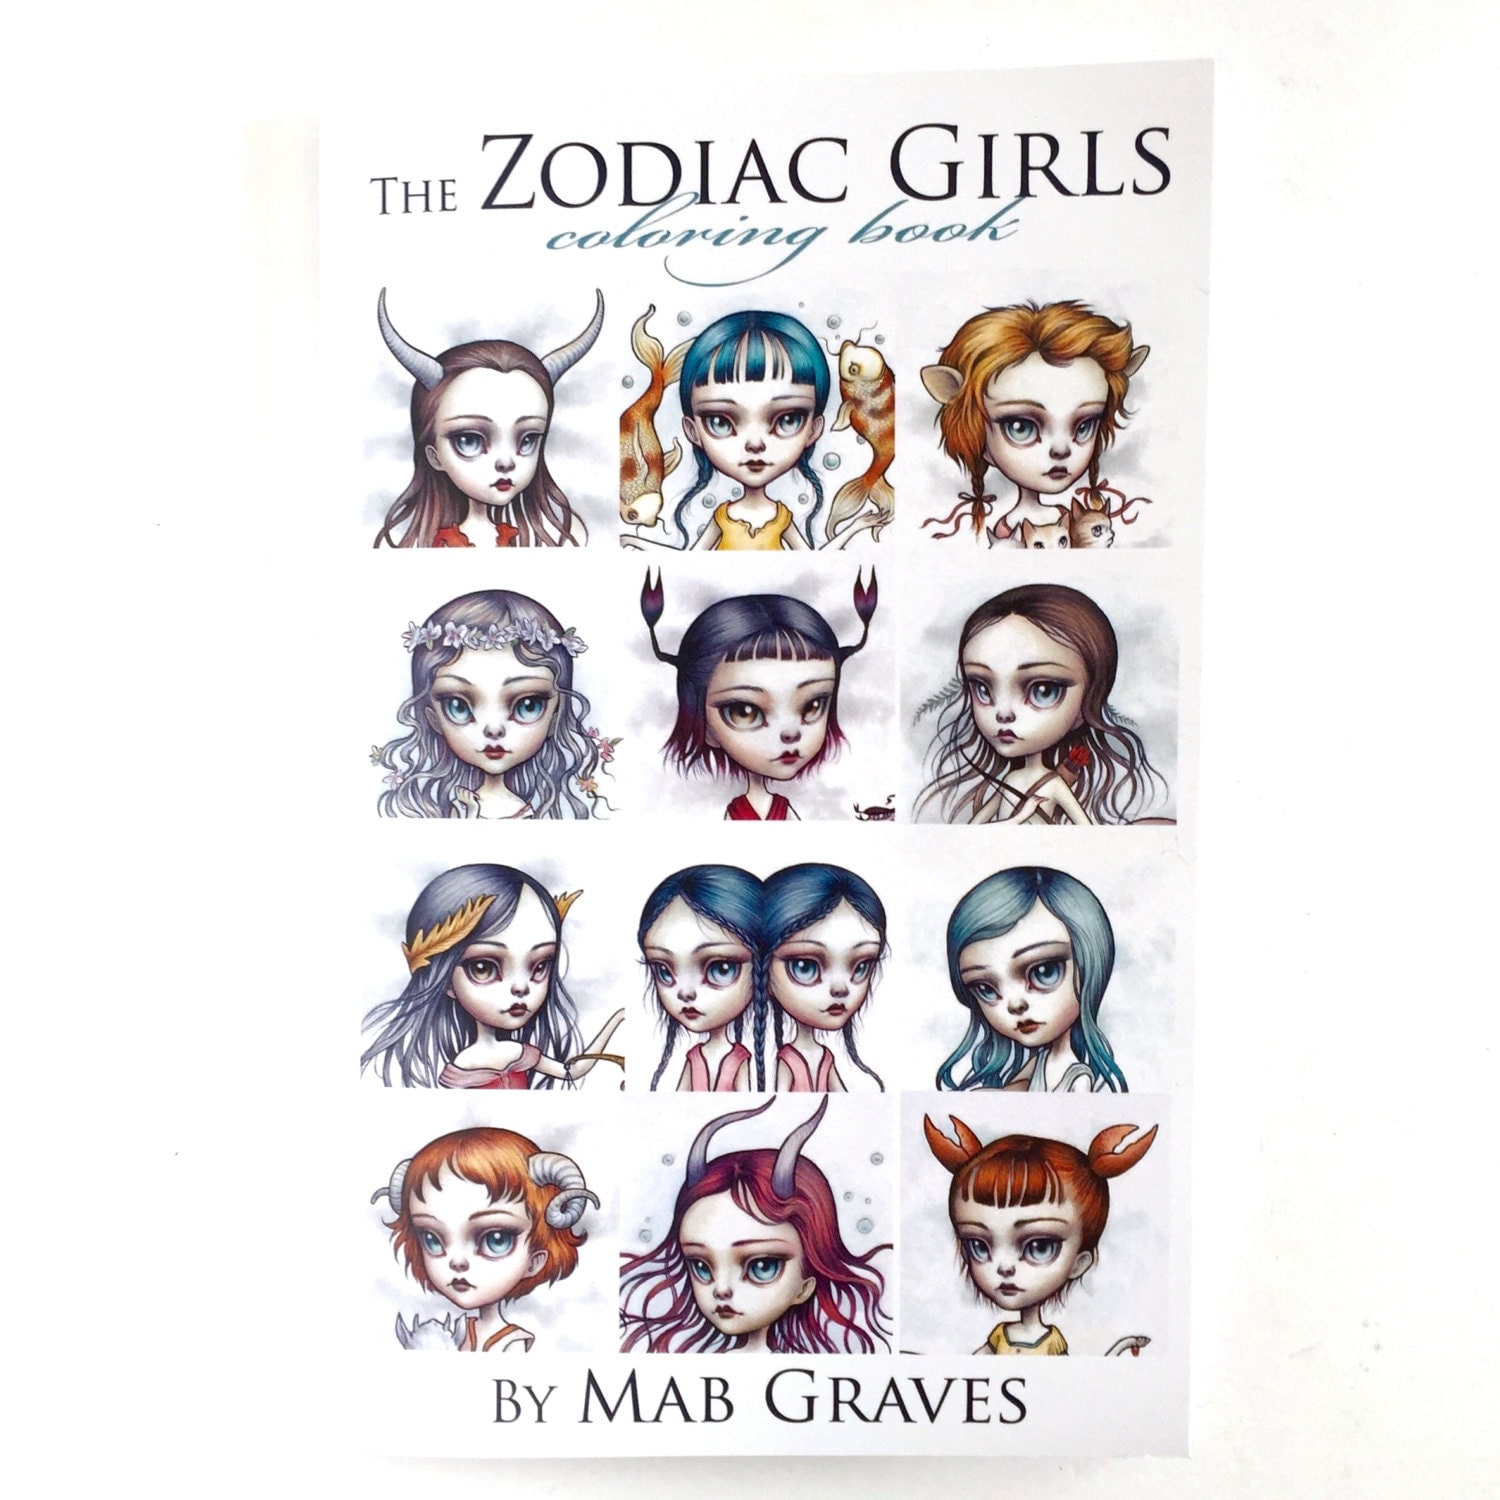 The x files coloring book - Zodiac Girls Coloring Book Tattoo Line Design Book Surrealism Lowbrow Art Book By Mab Graves Zodiac Astrology Sign Book